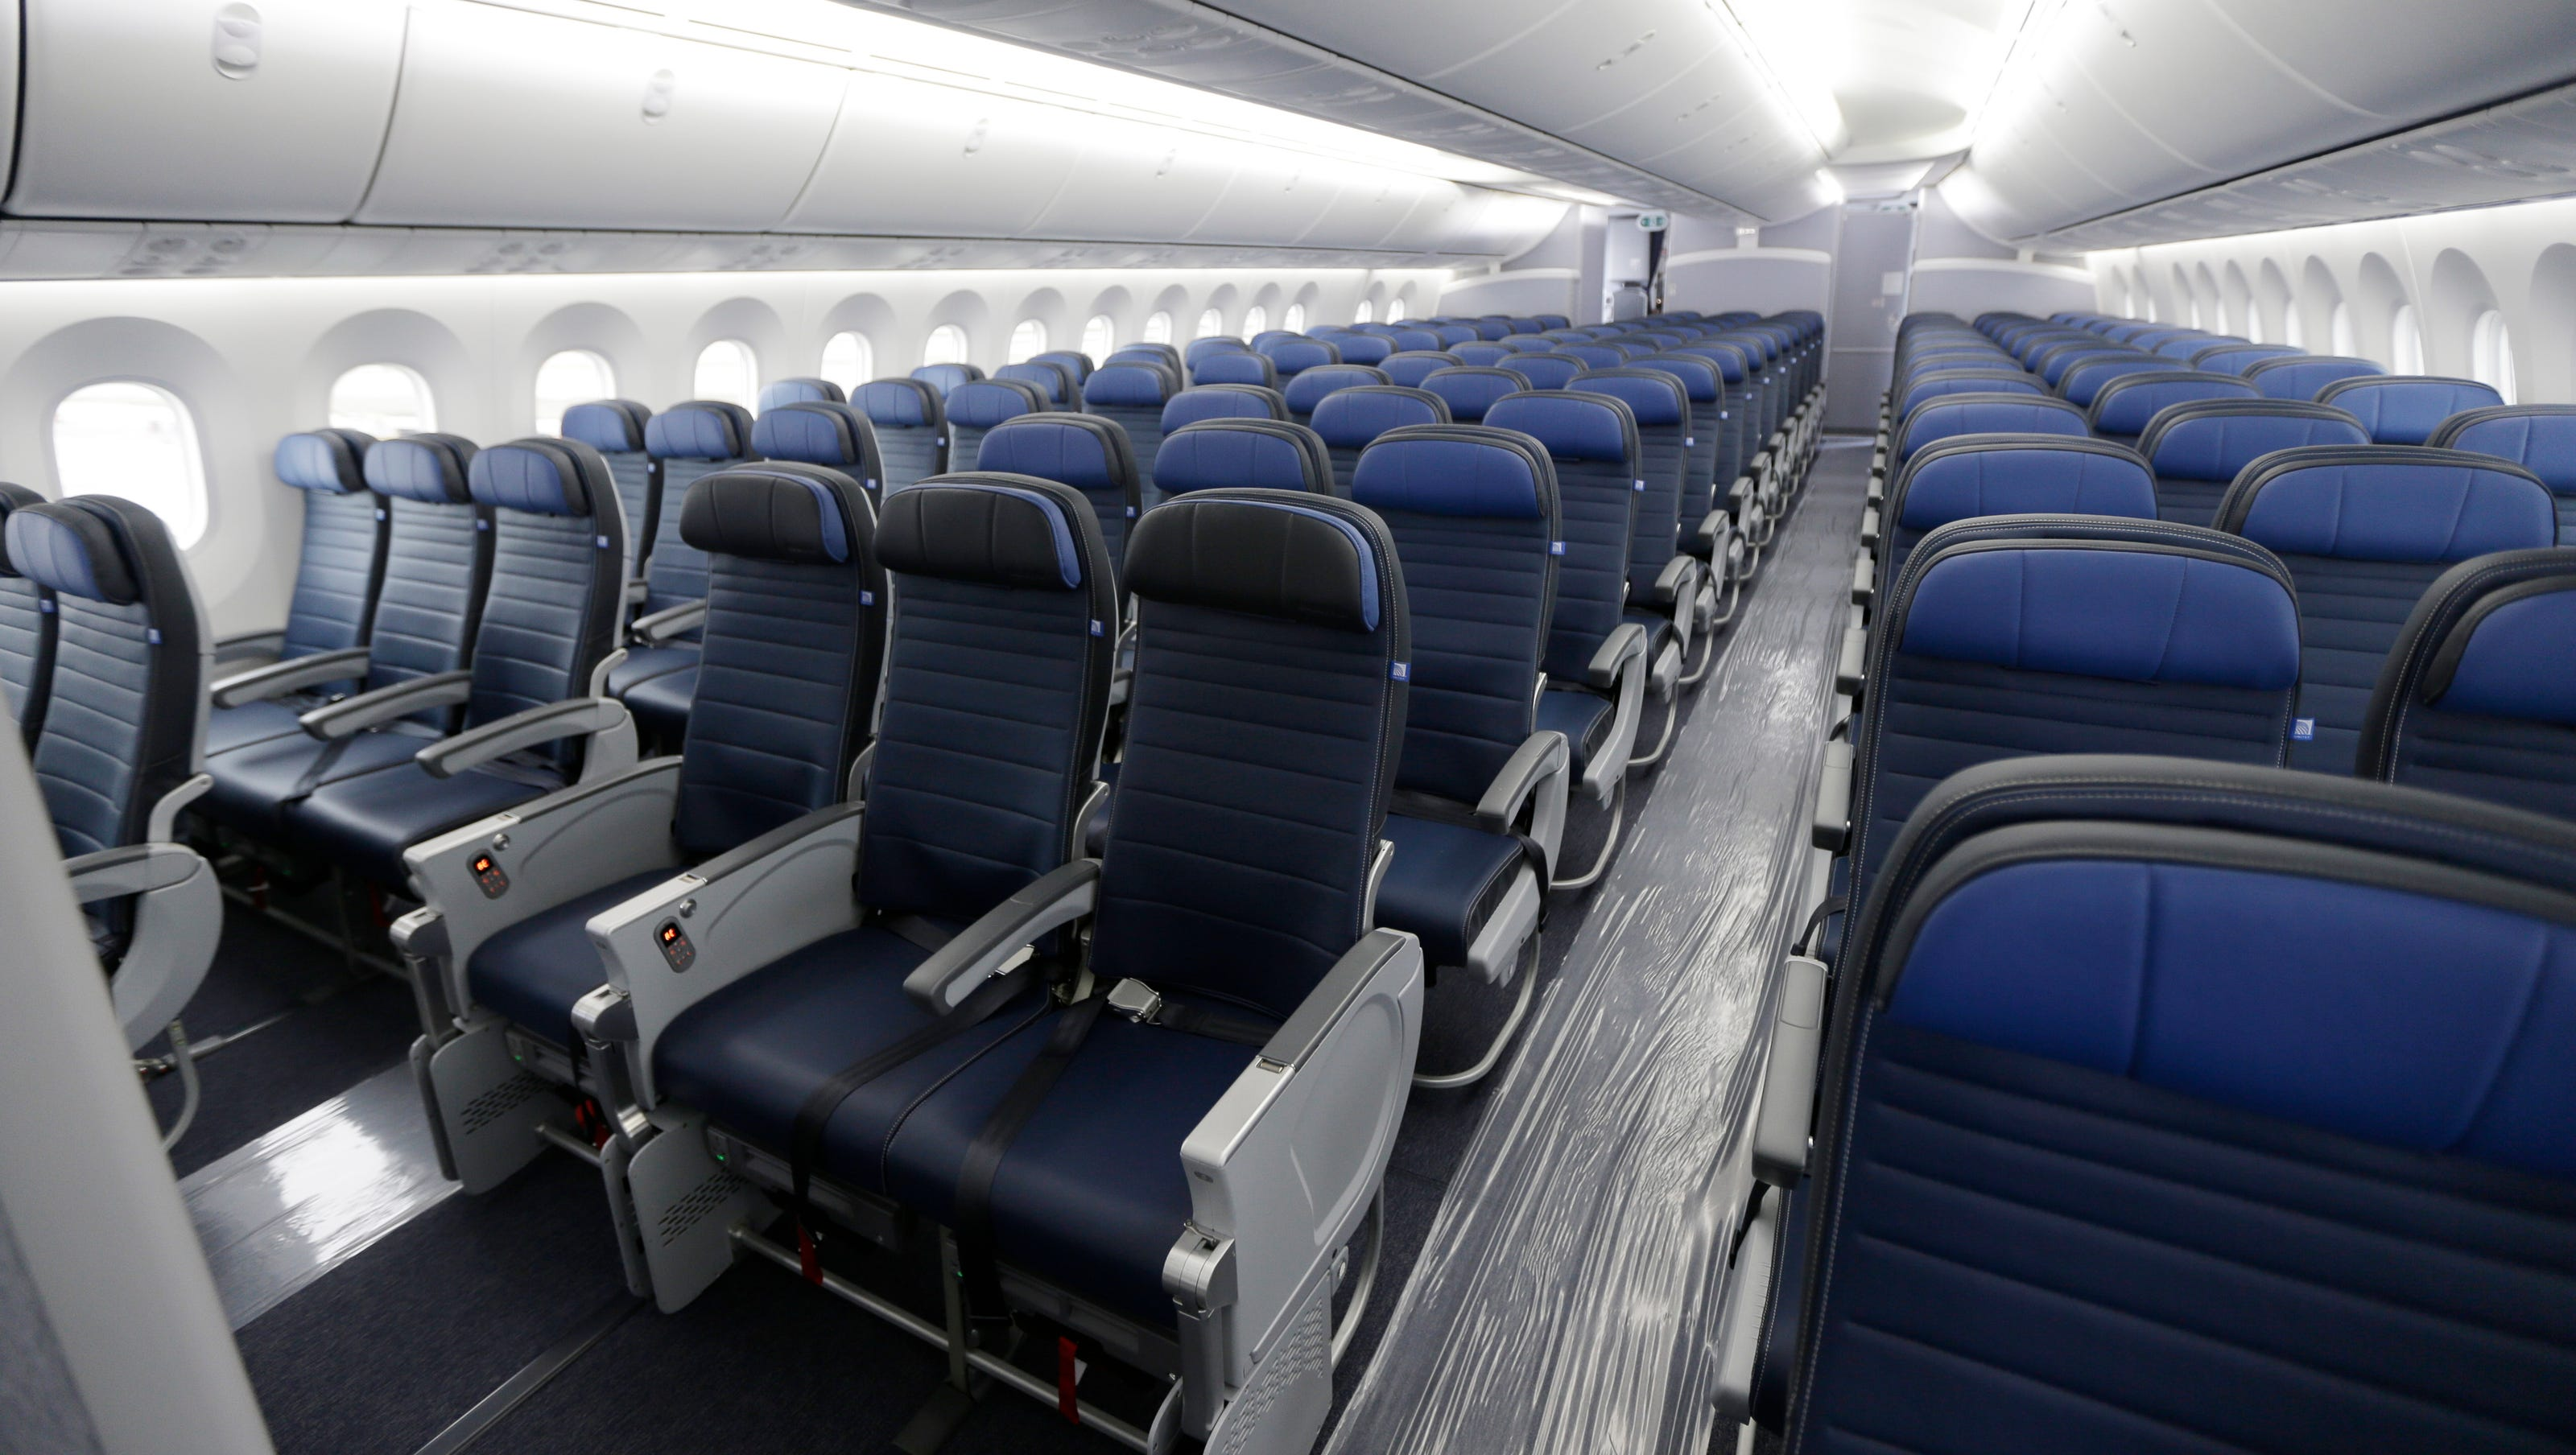 Congress Takes Aim At Shrinking Seats Fake Service Animals On Airplanes